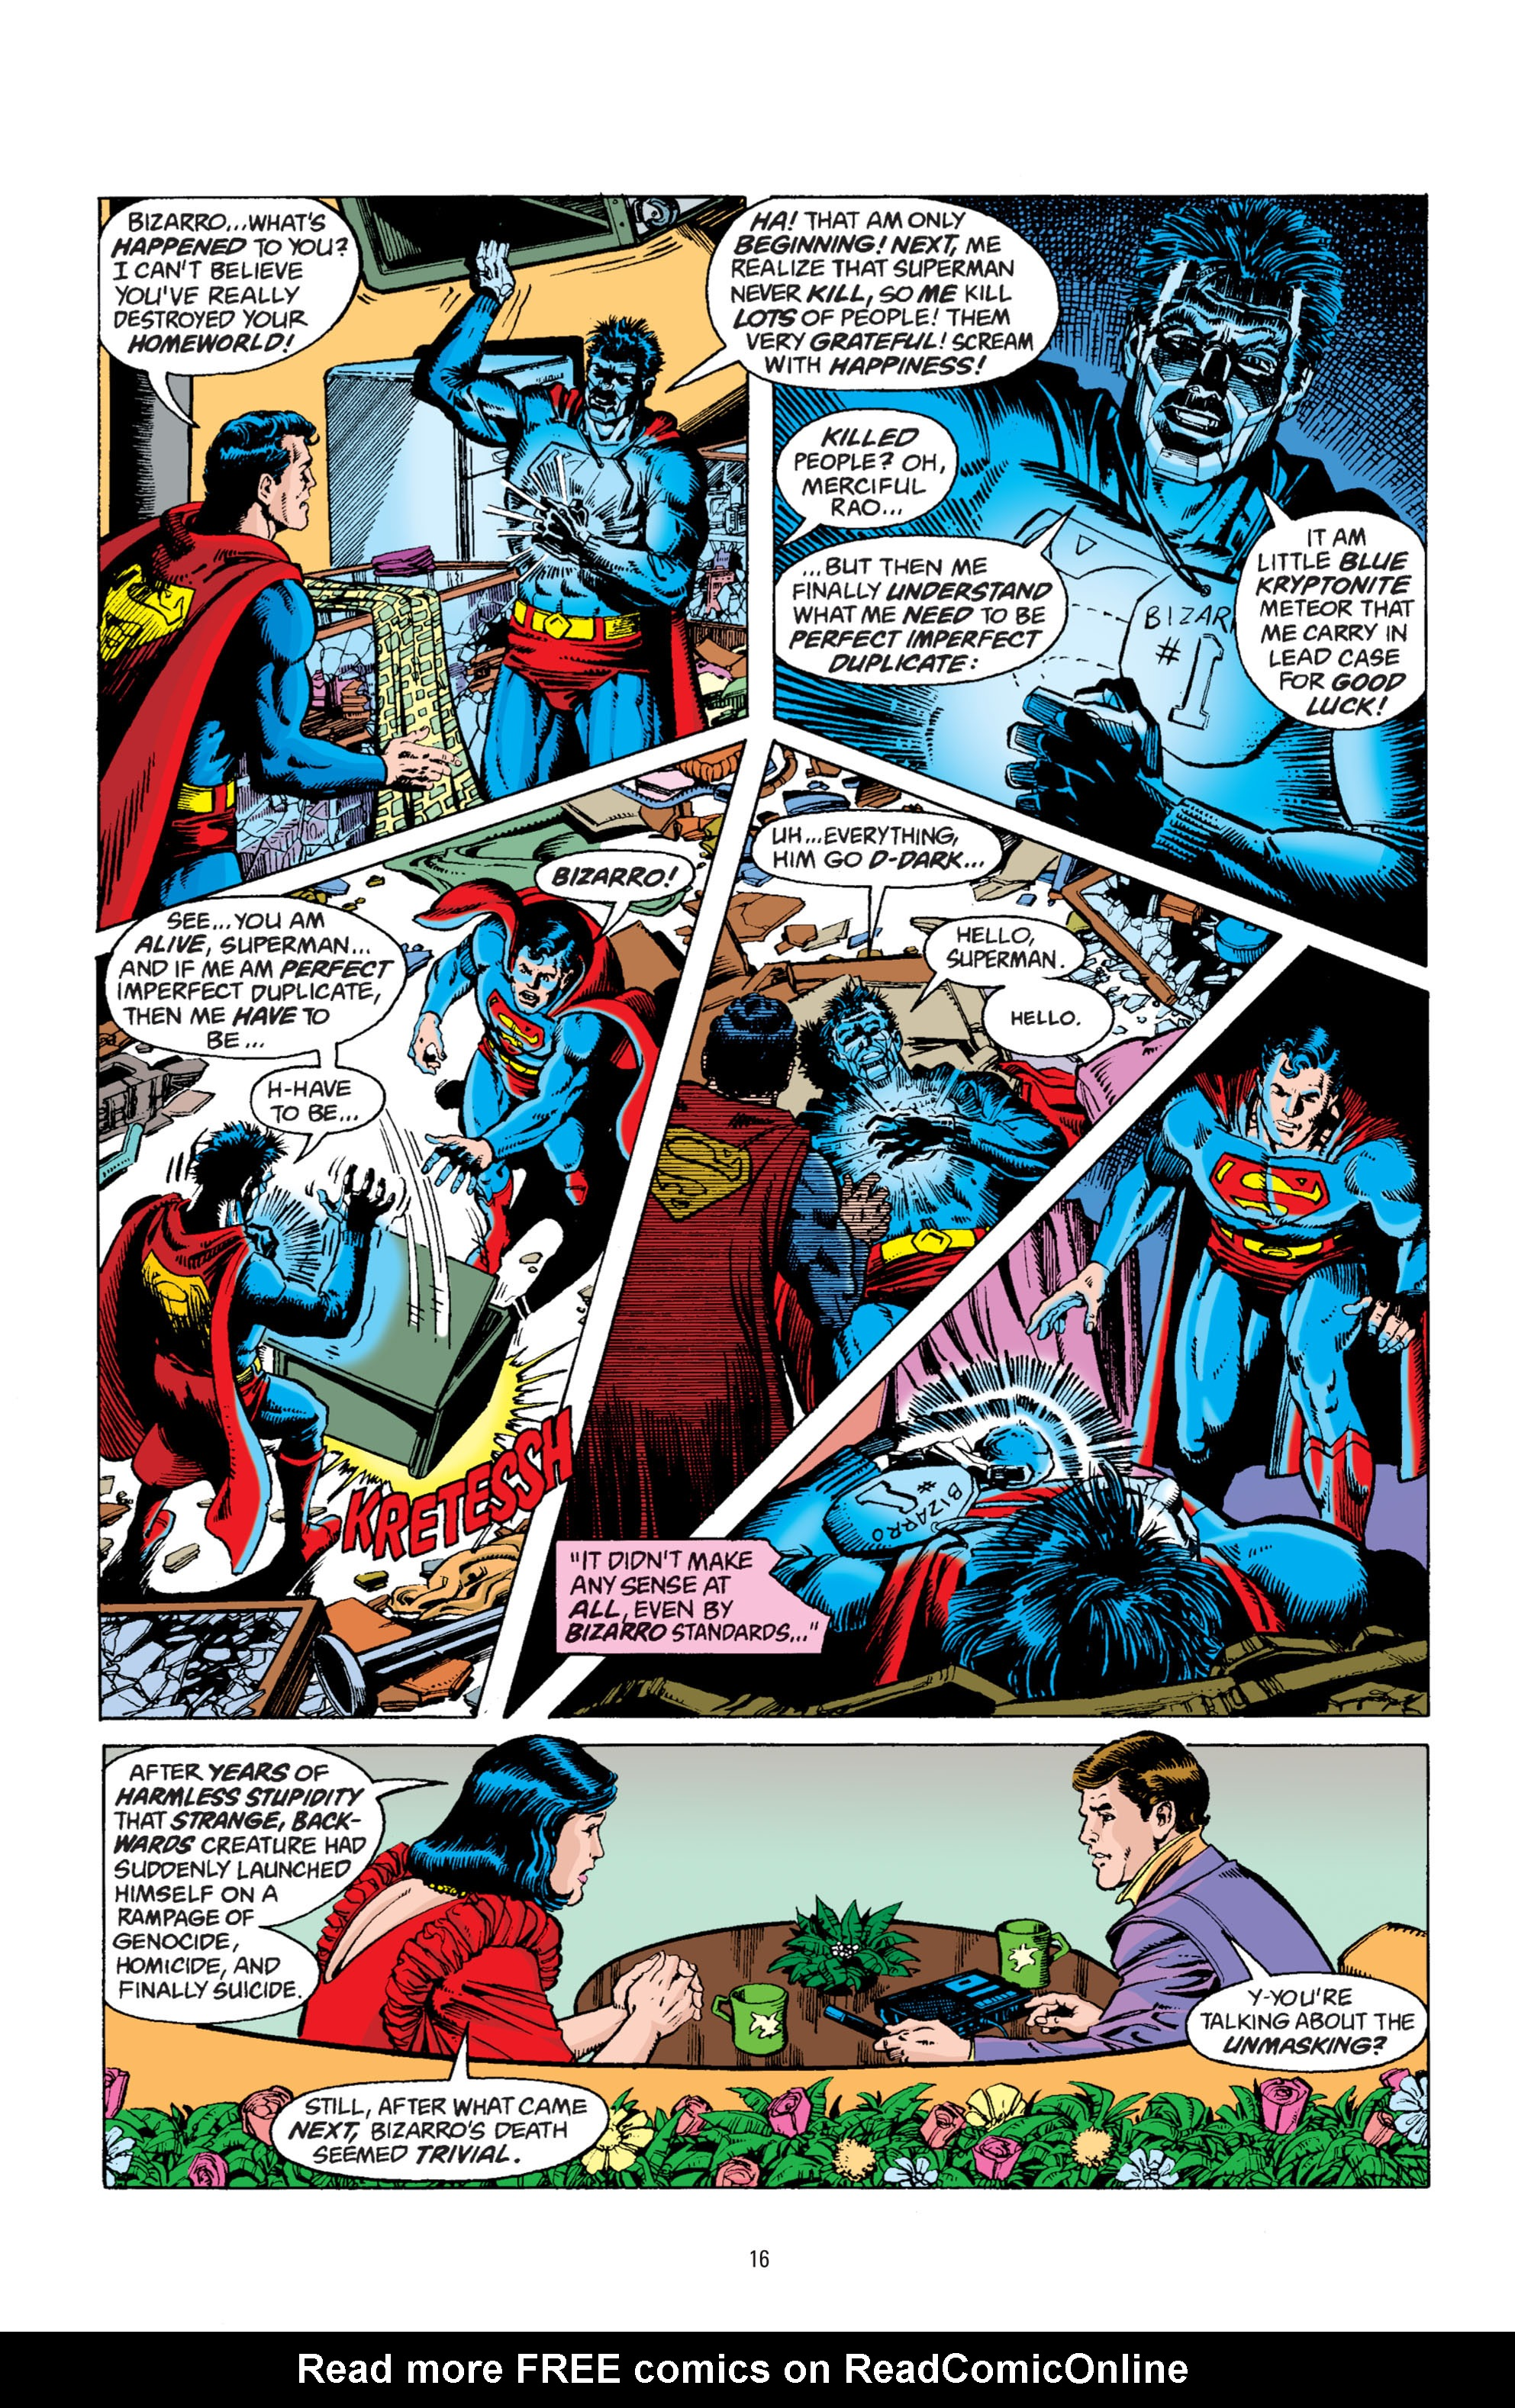 Read online Superman: Whatever Happened to the Man of Tomorrow? comic -  Issue # TPB - 15